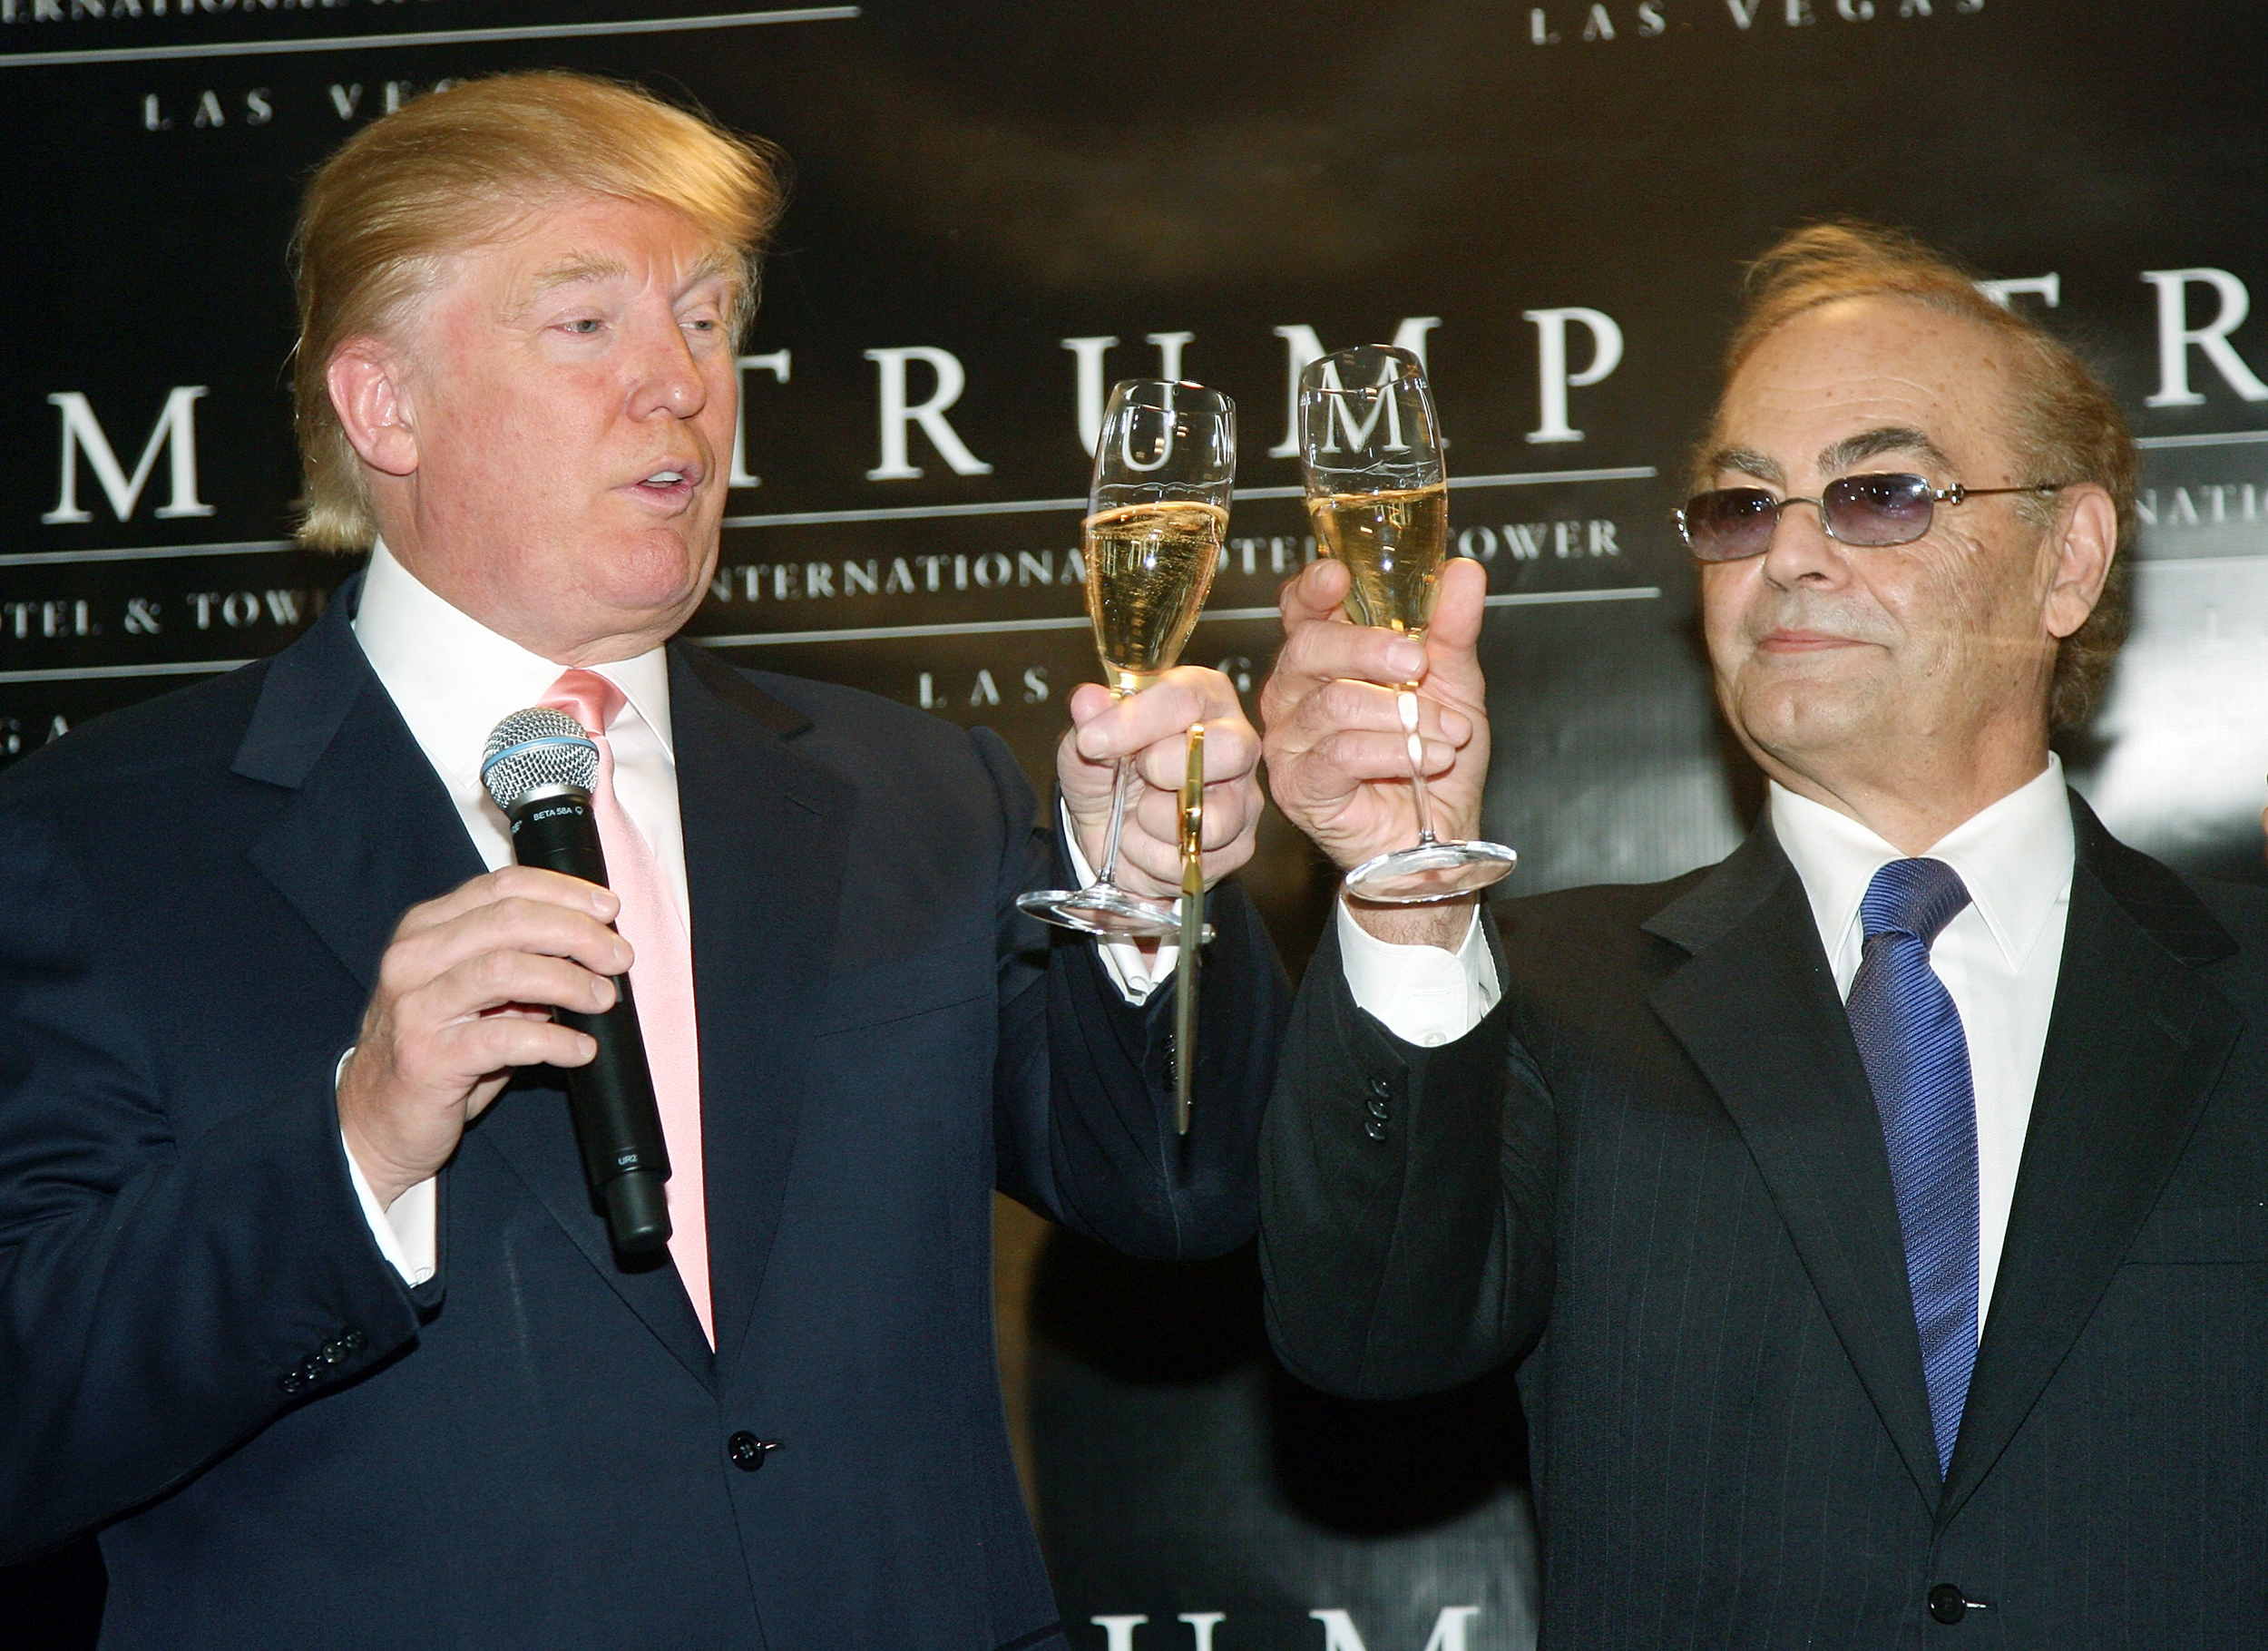 Donald Trump is shutting down his charitable foundation